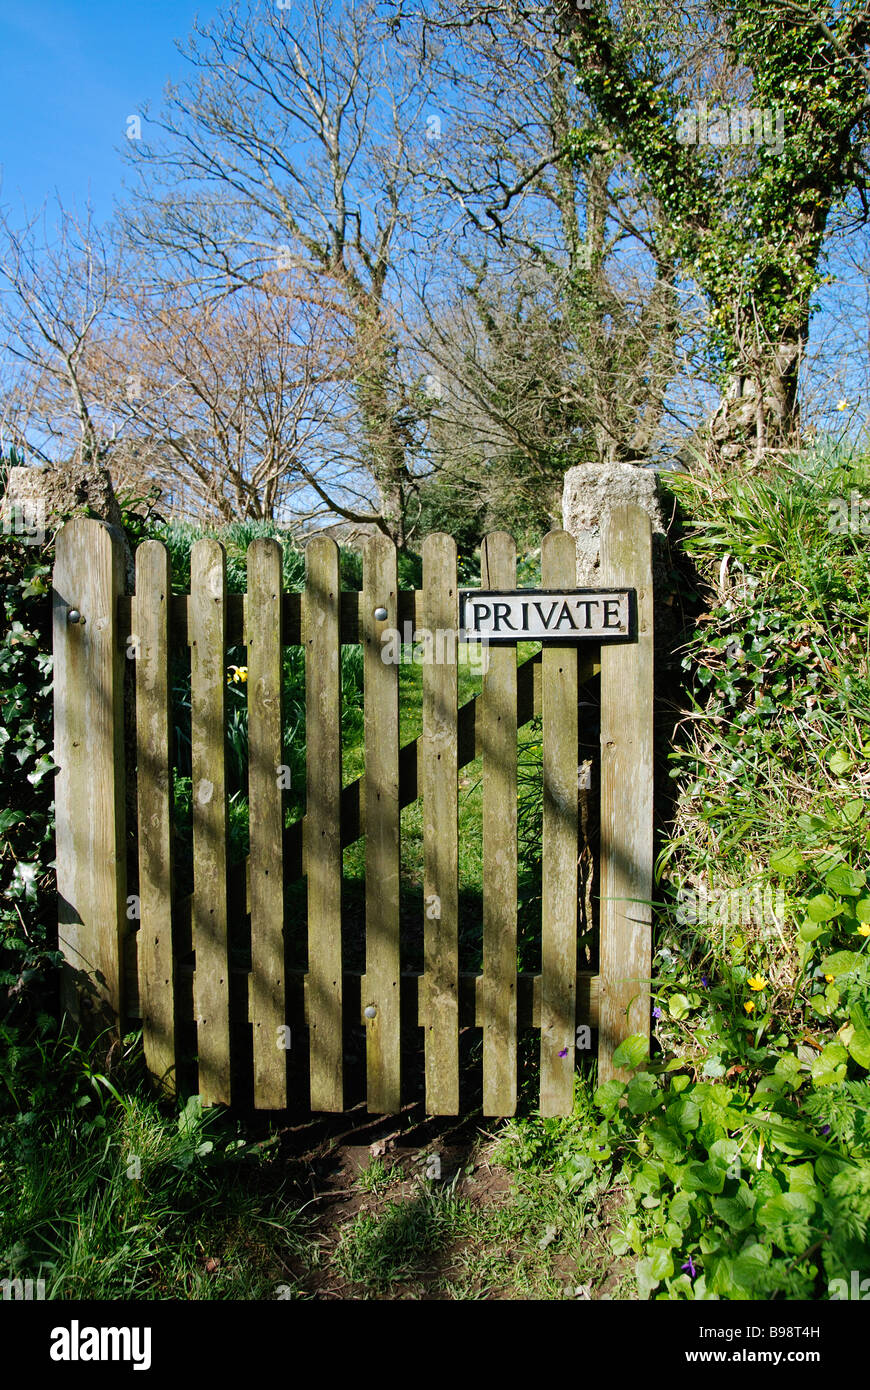 a picket style gate with a private sign on - Stock Image